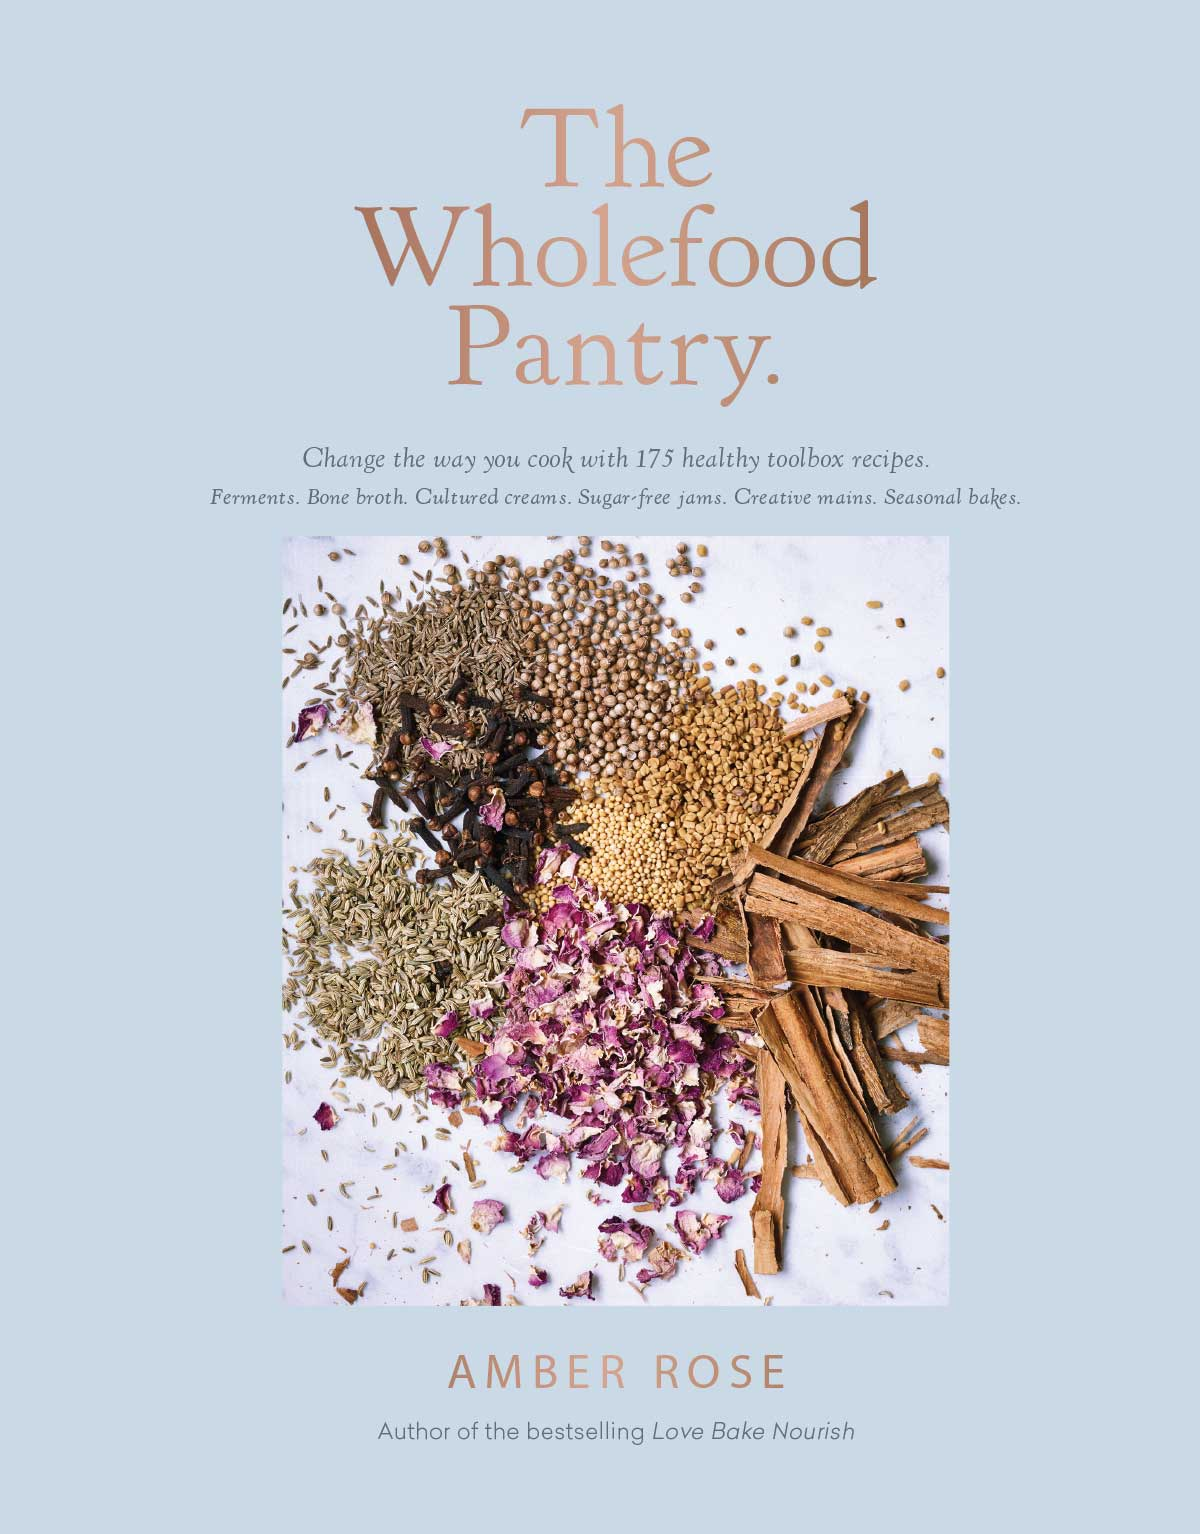 The Wholefood Pantry book cover